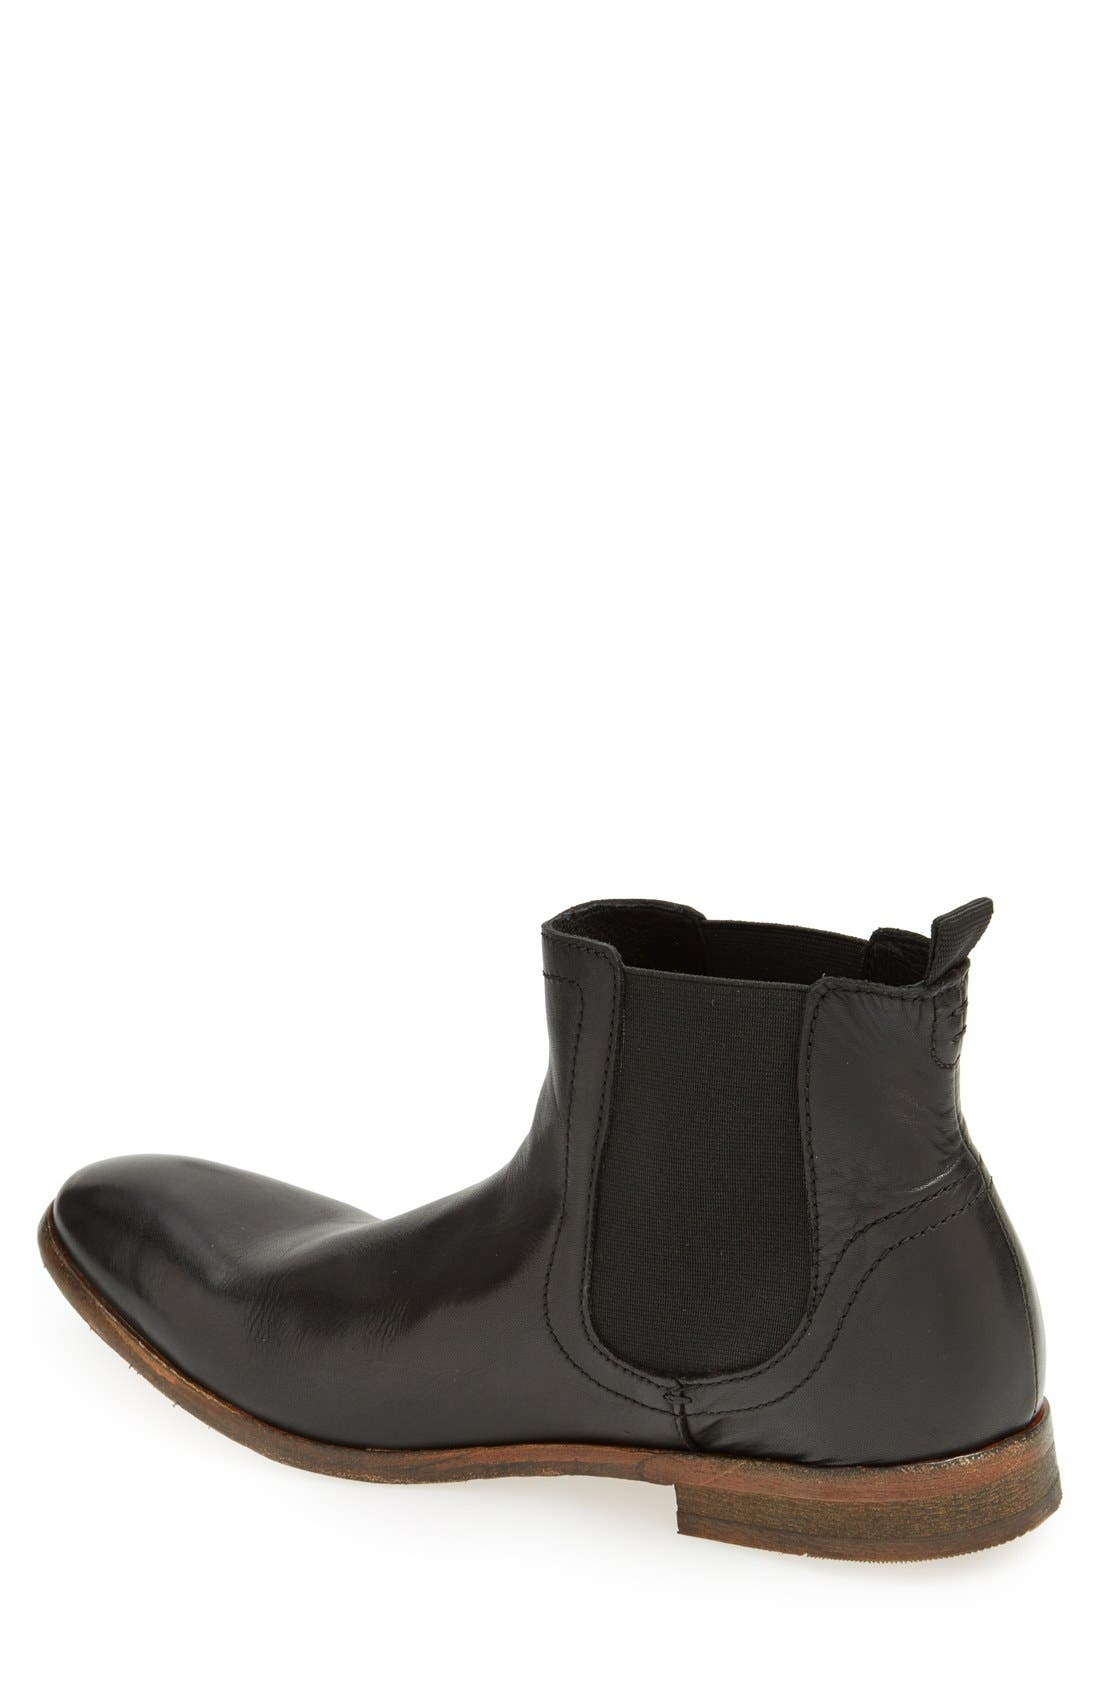 H BY HUDSON,                             'Patterson' Chelsea Boot,                             Alternate thumbnail 3, color,                             001